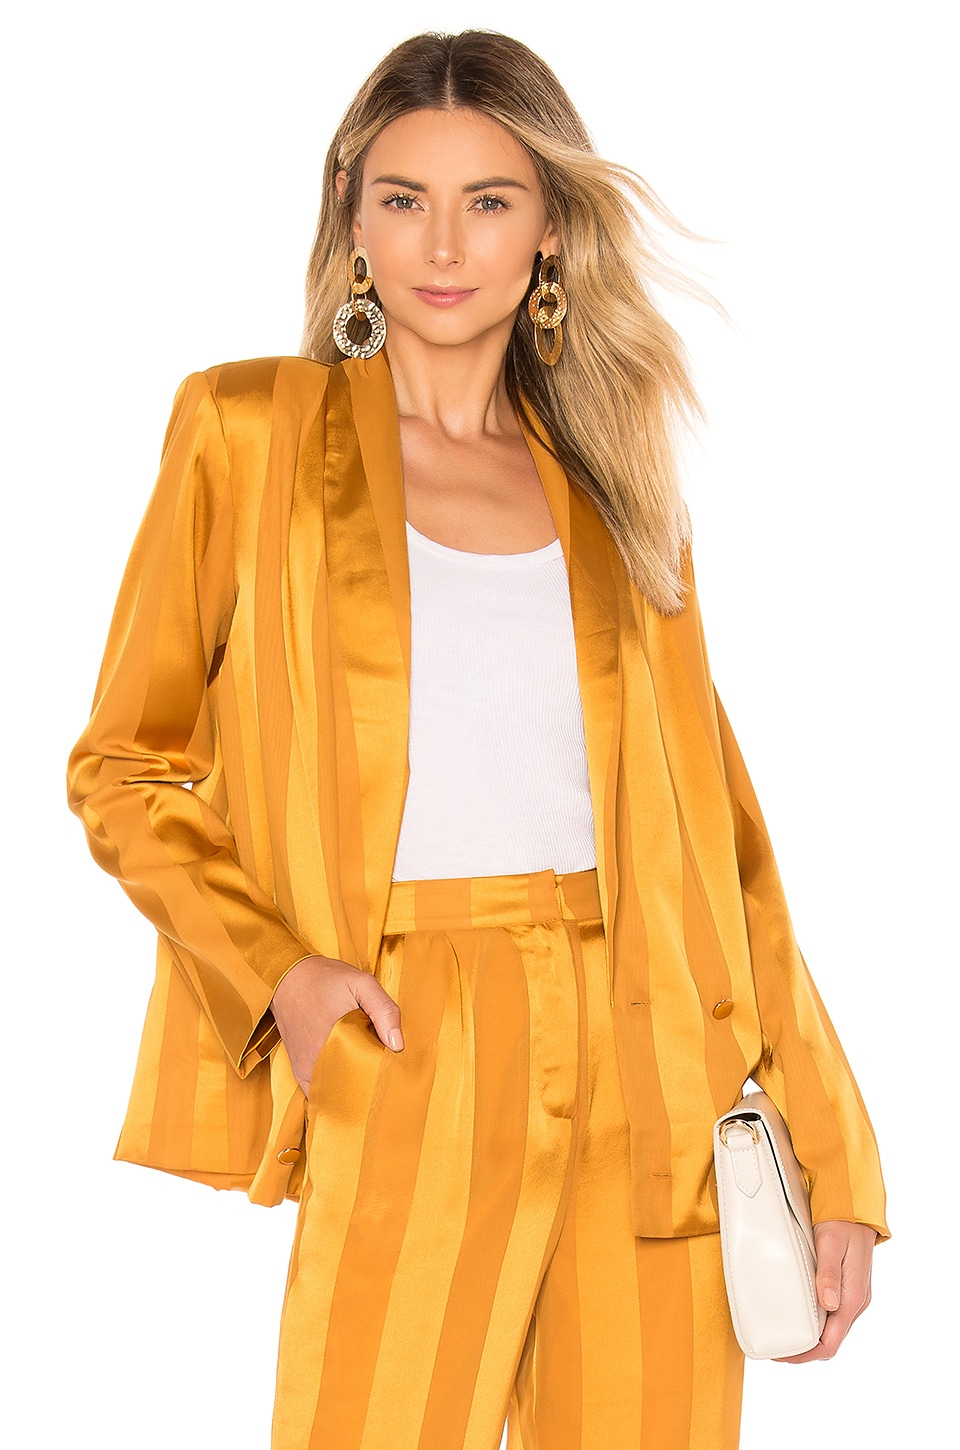 House of Harlow 1960 X REVOLVE Mira Jacket in Inca Gold